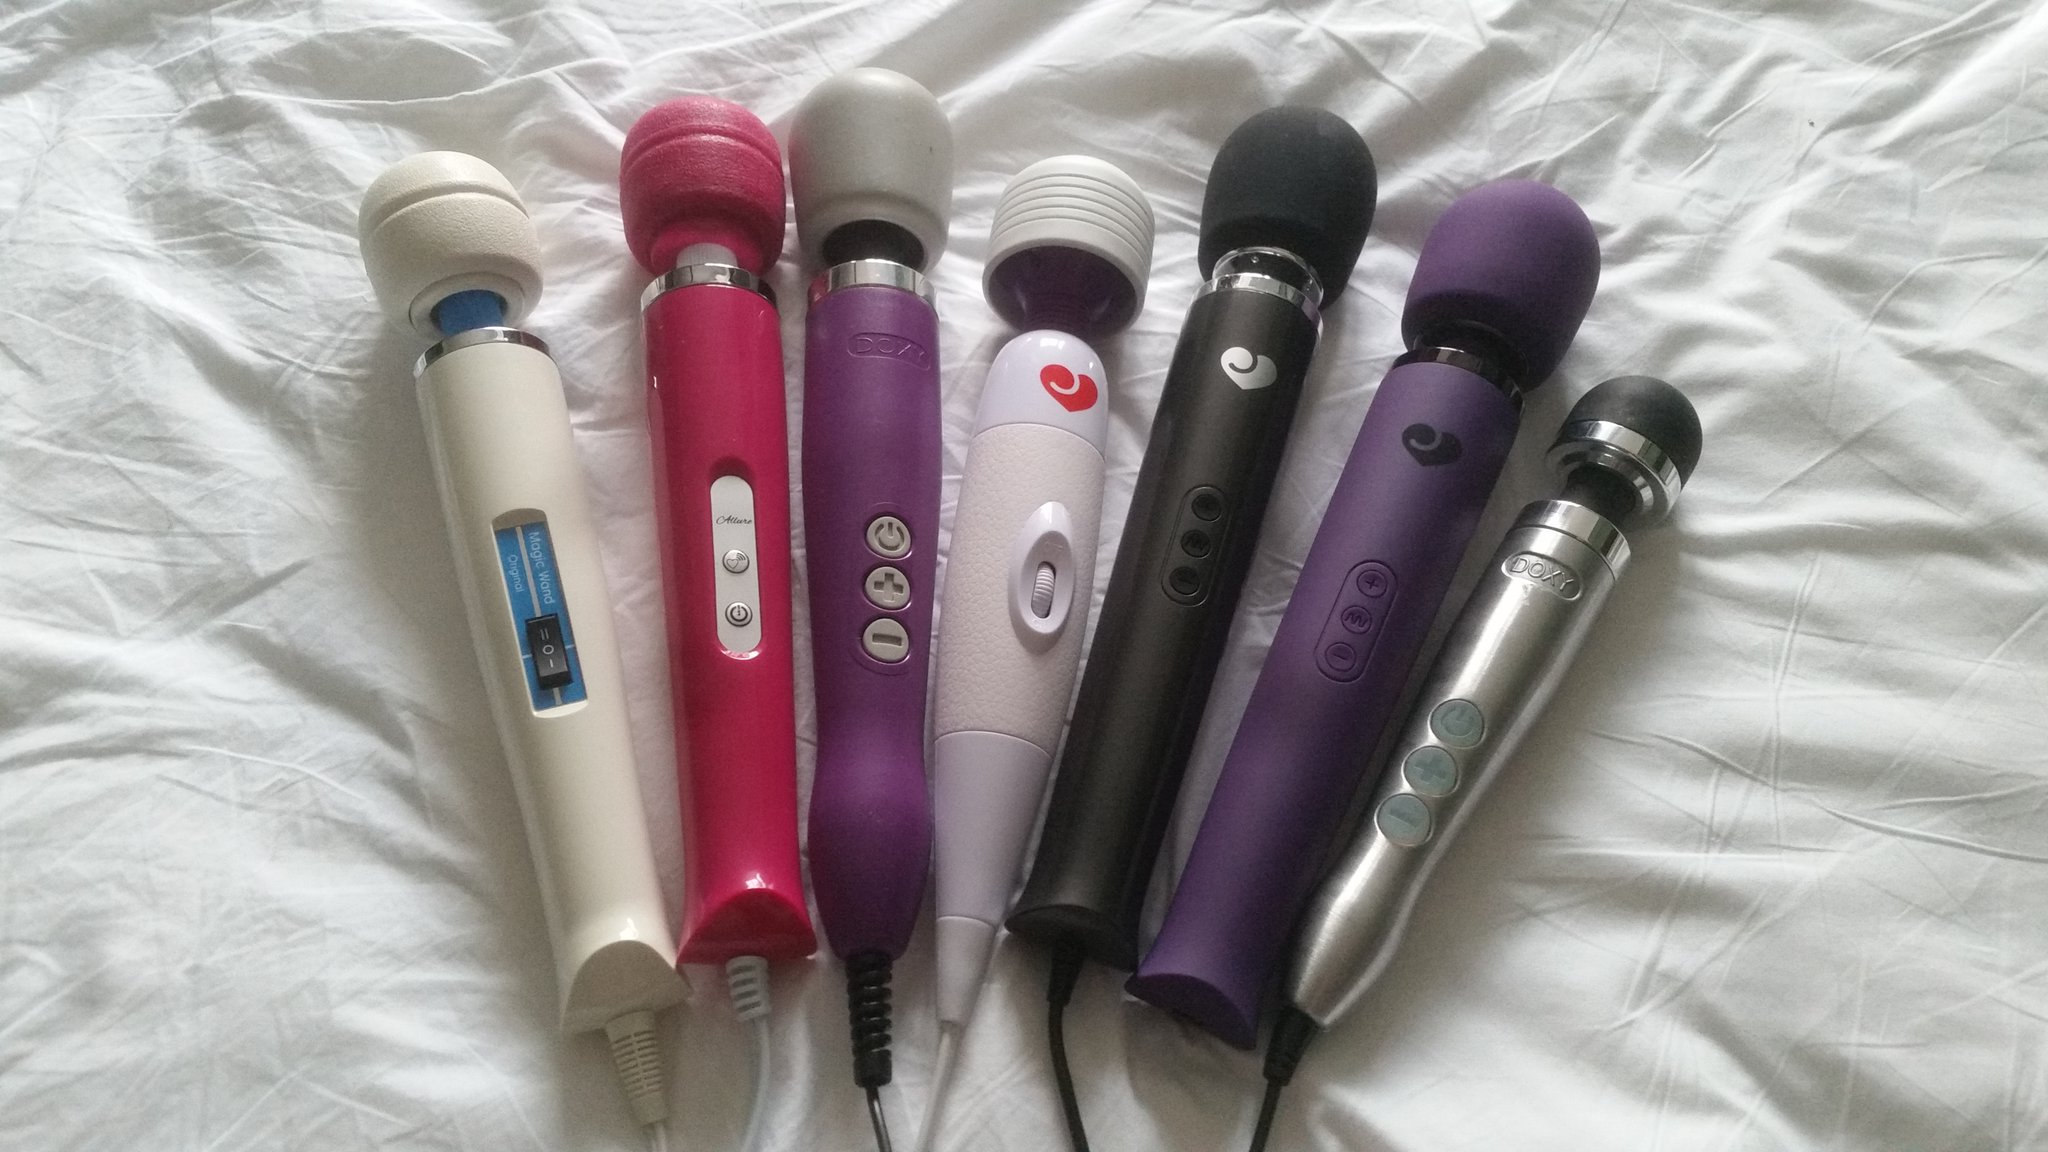 All seven of the wand vibrators I own lying on my bed on a white sheet.